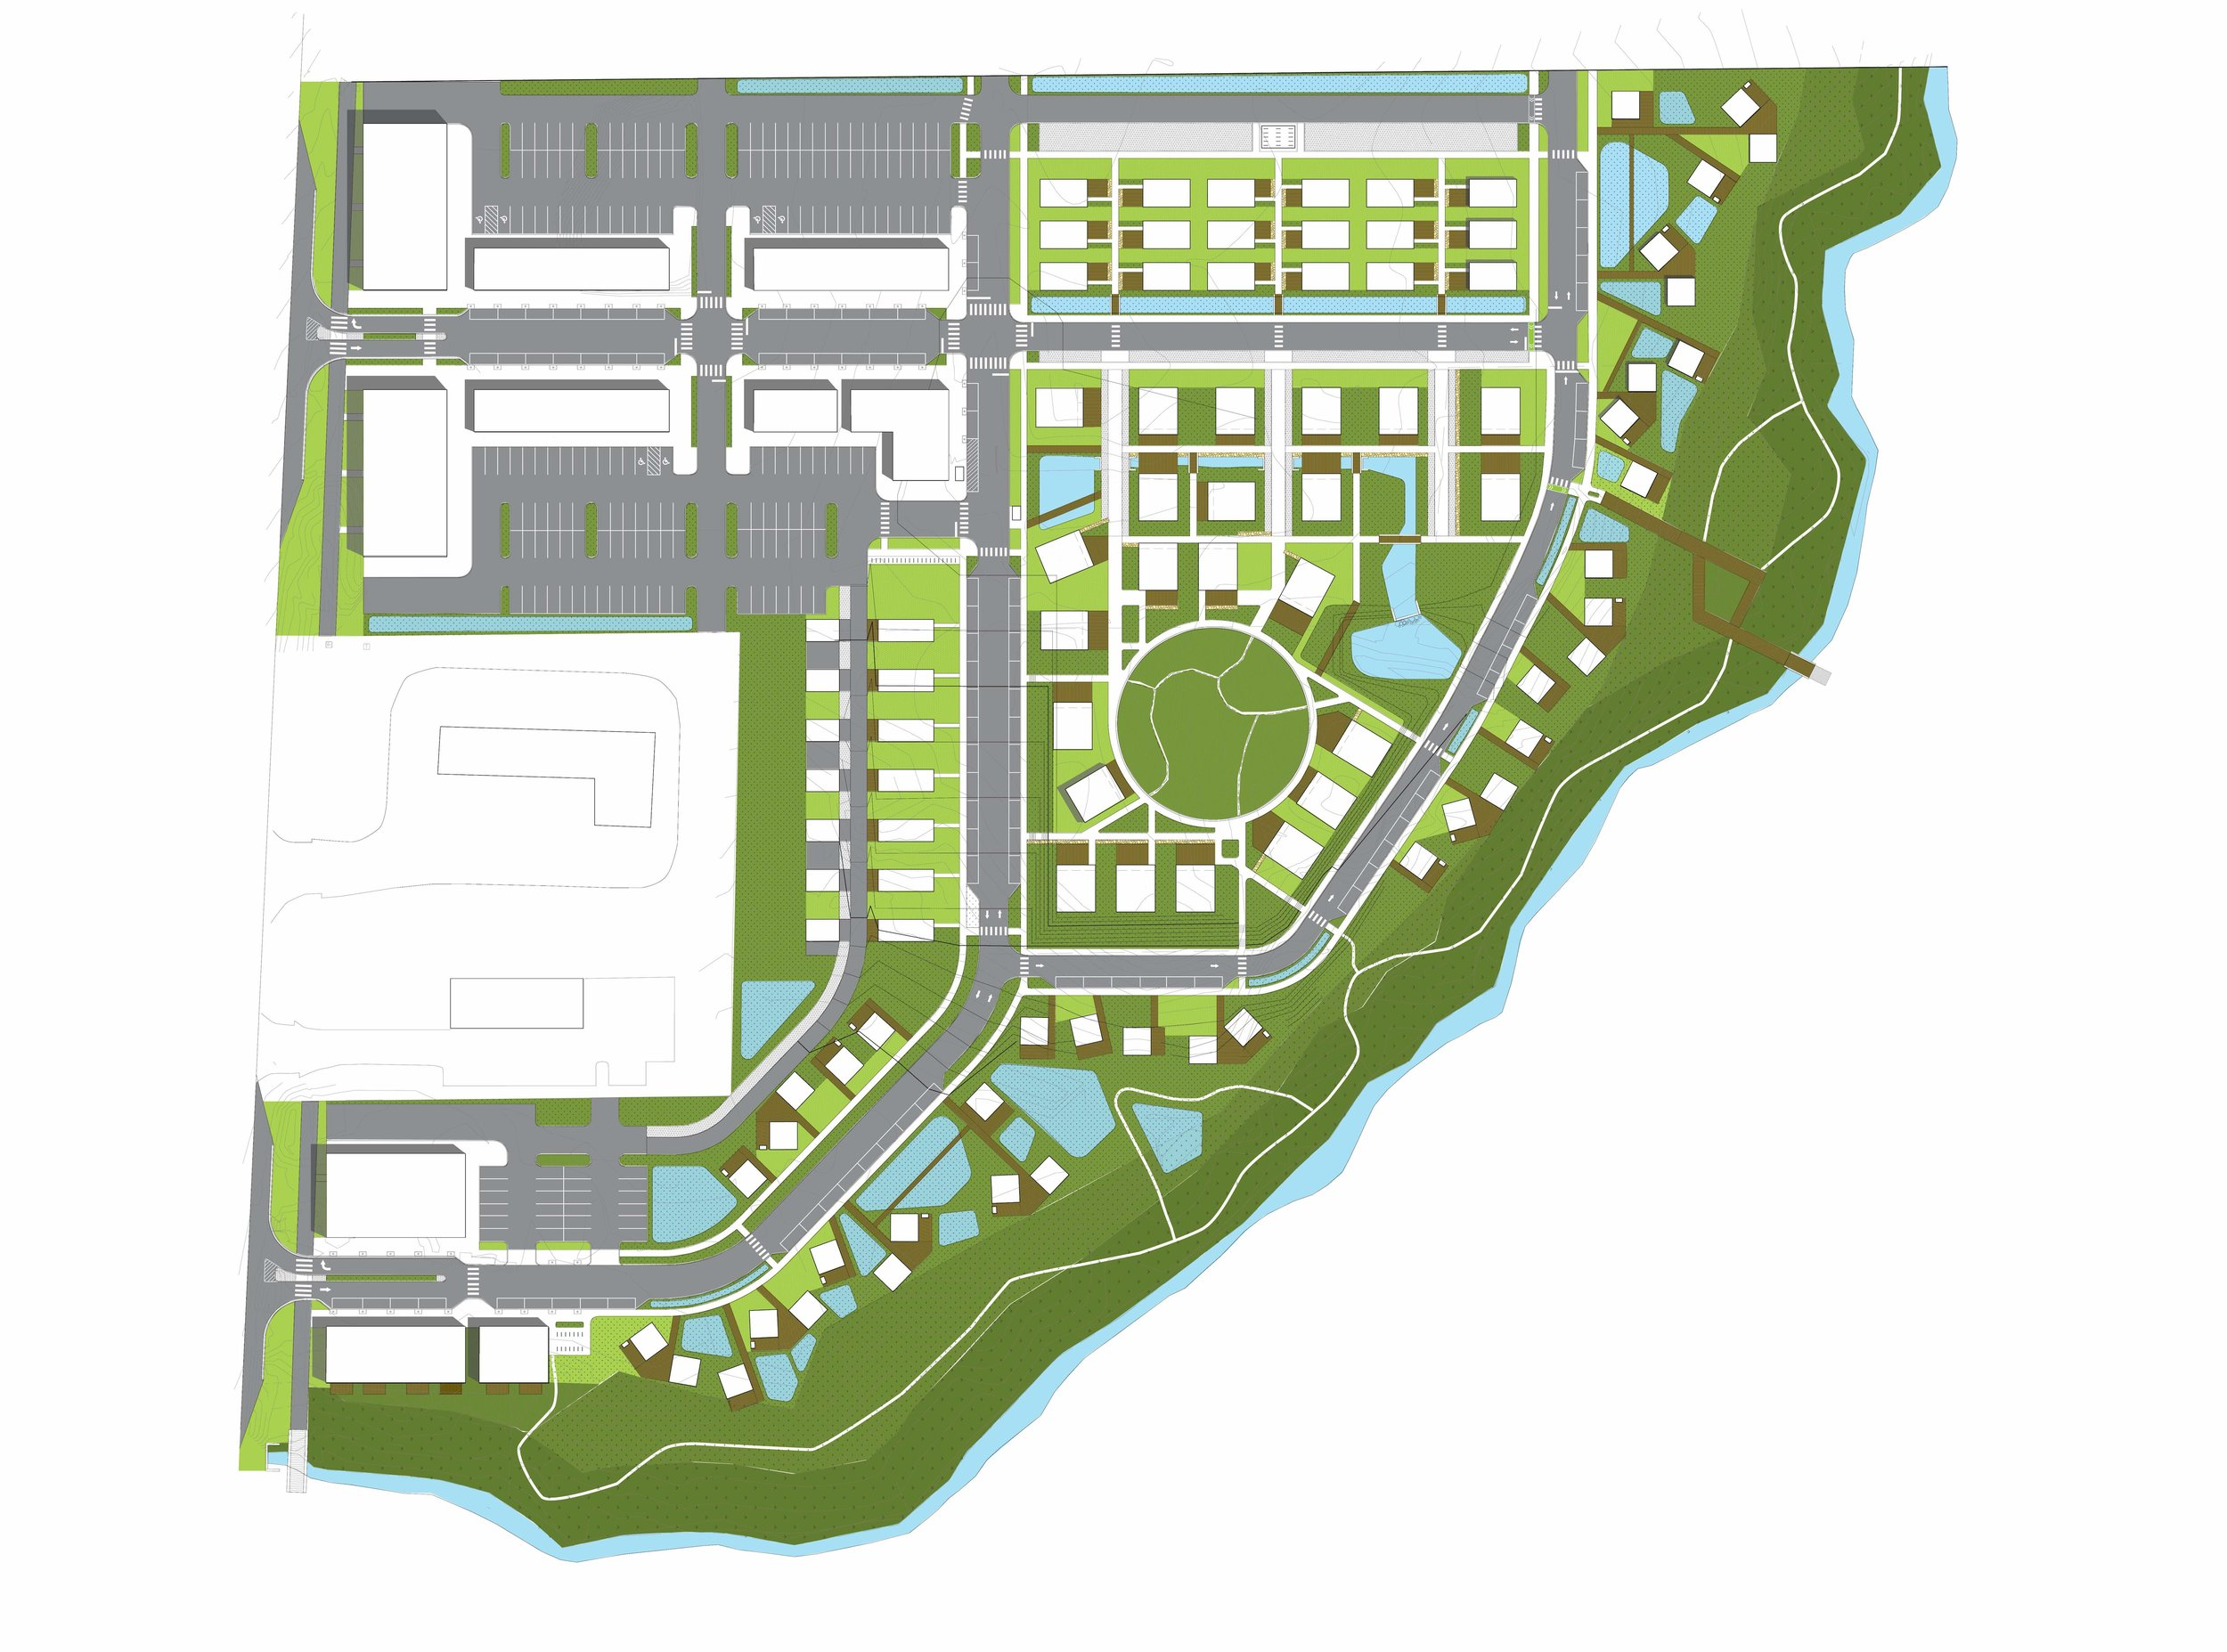 S7_board_site plan_2_no trees copy.jpg